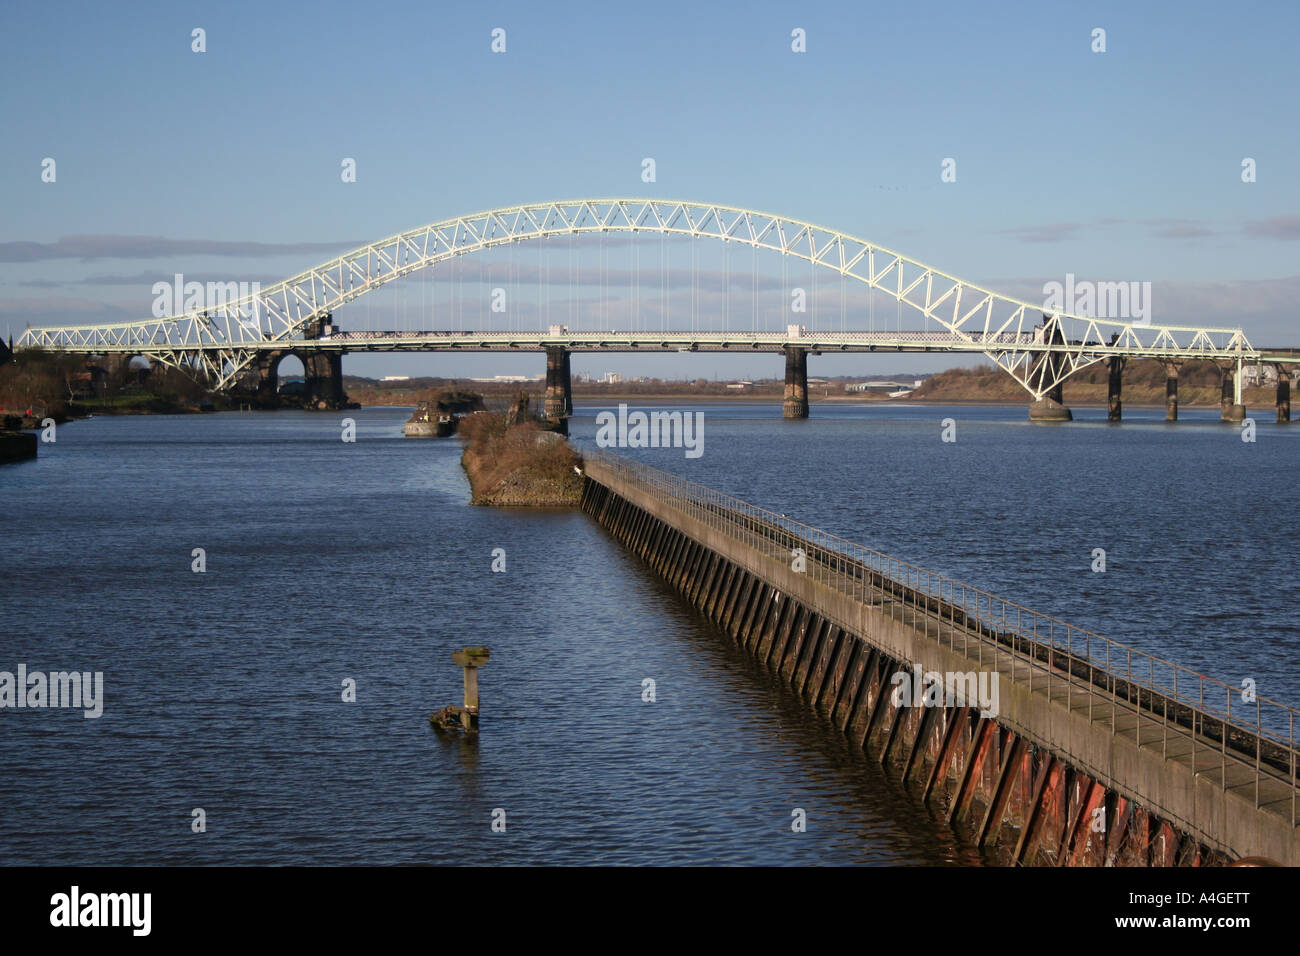 The old Silver Jubilee Bridge over the River Mersey and Manchester Ship Canal between Runcorn & Widnes, Cheshire, - Stock Image